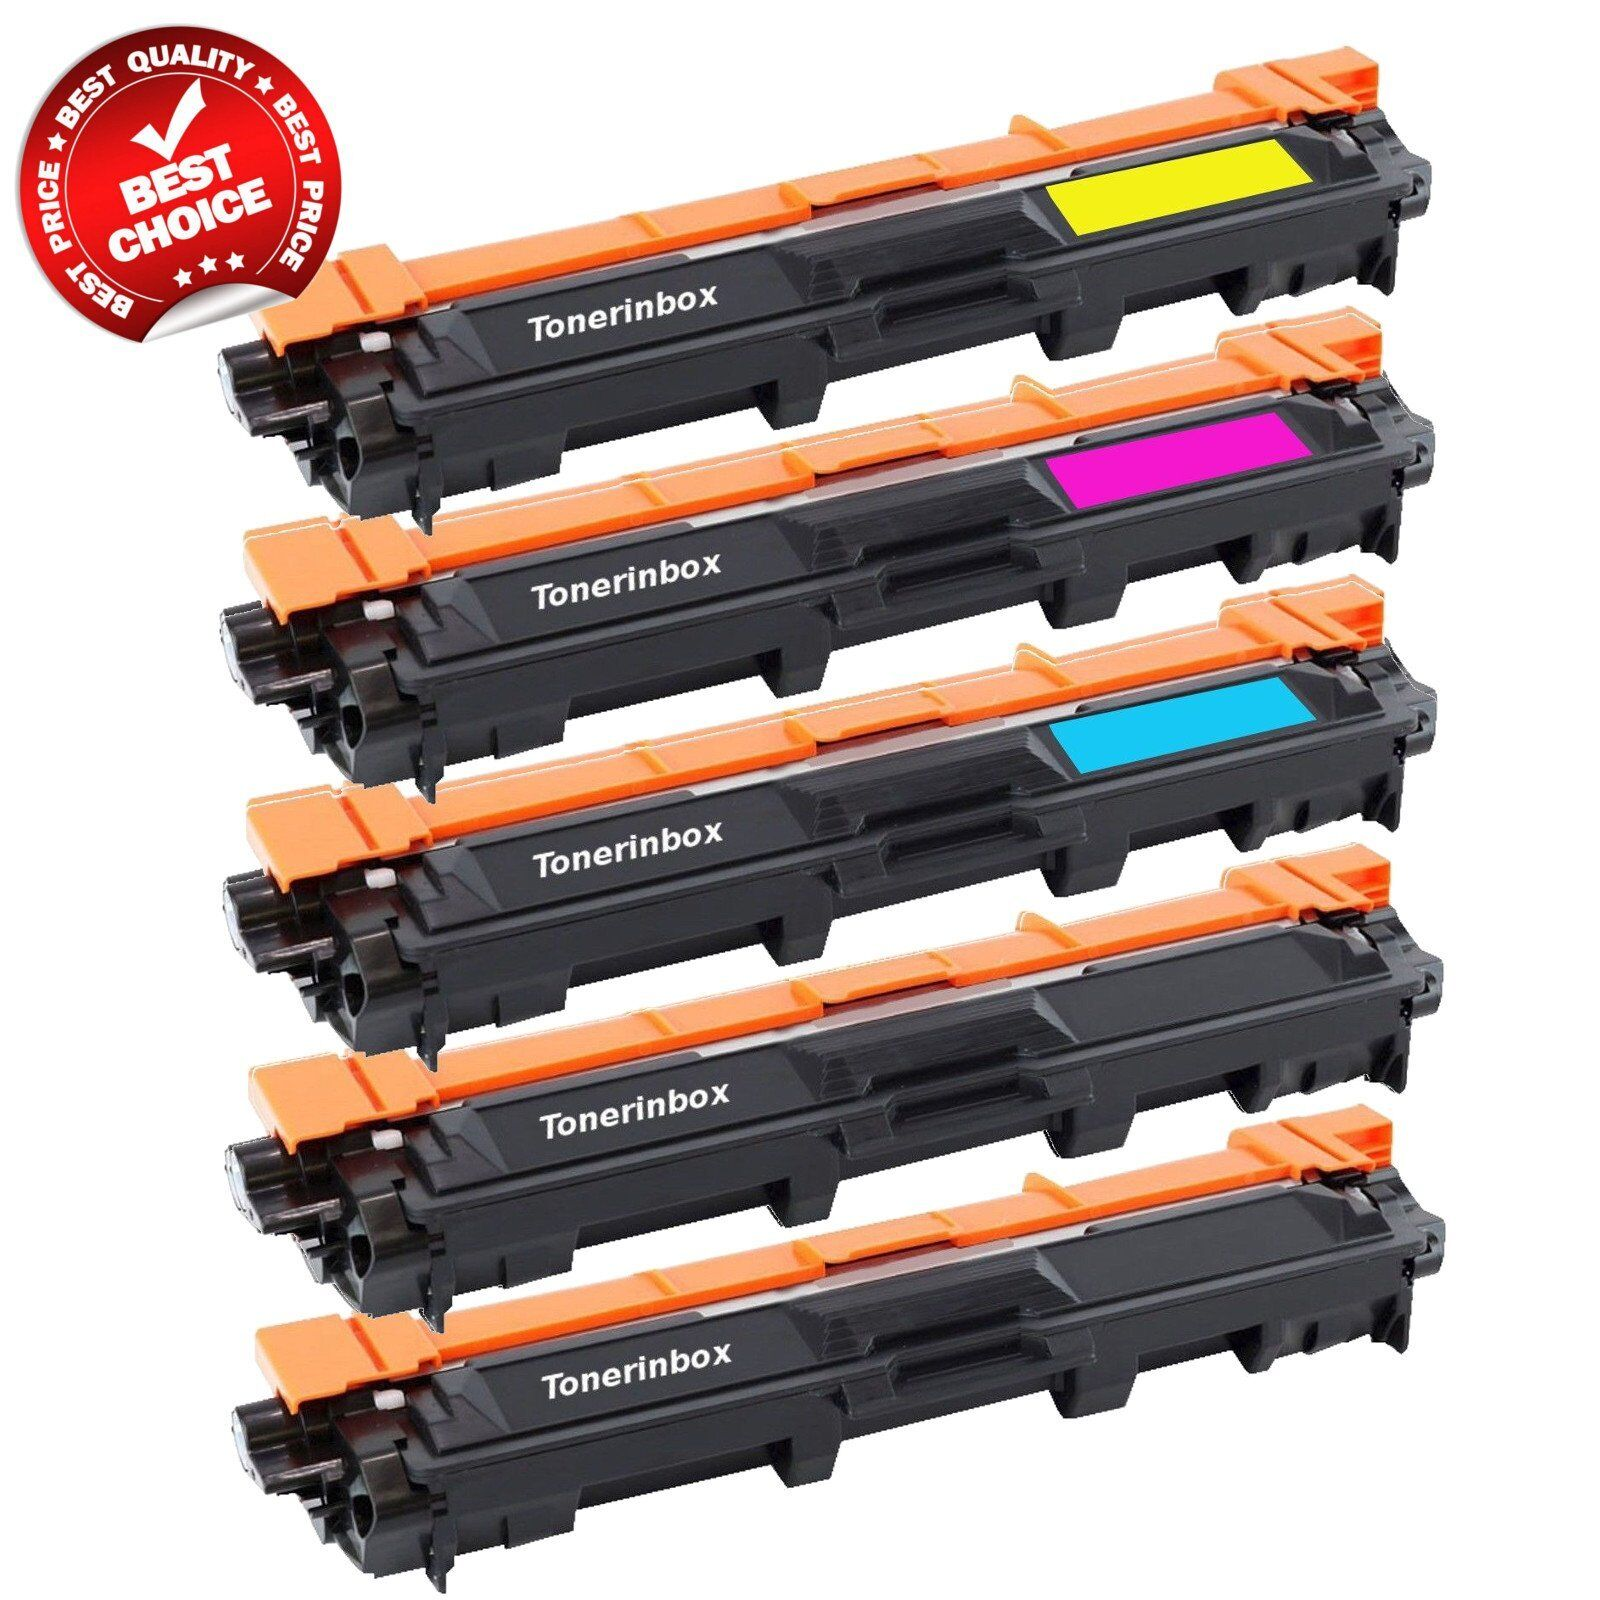 MFC-9340CDW 5 Pk TN221 BK TN225 Color Toner For Brother MFC-9130CW MFC-9330CDW